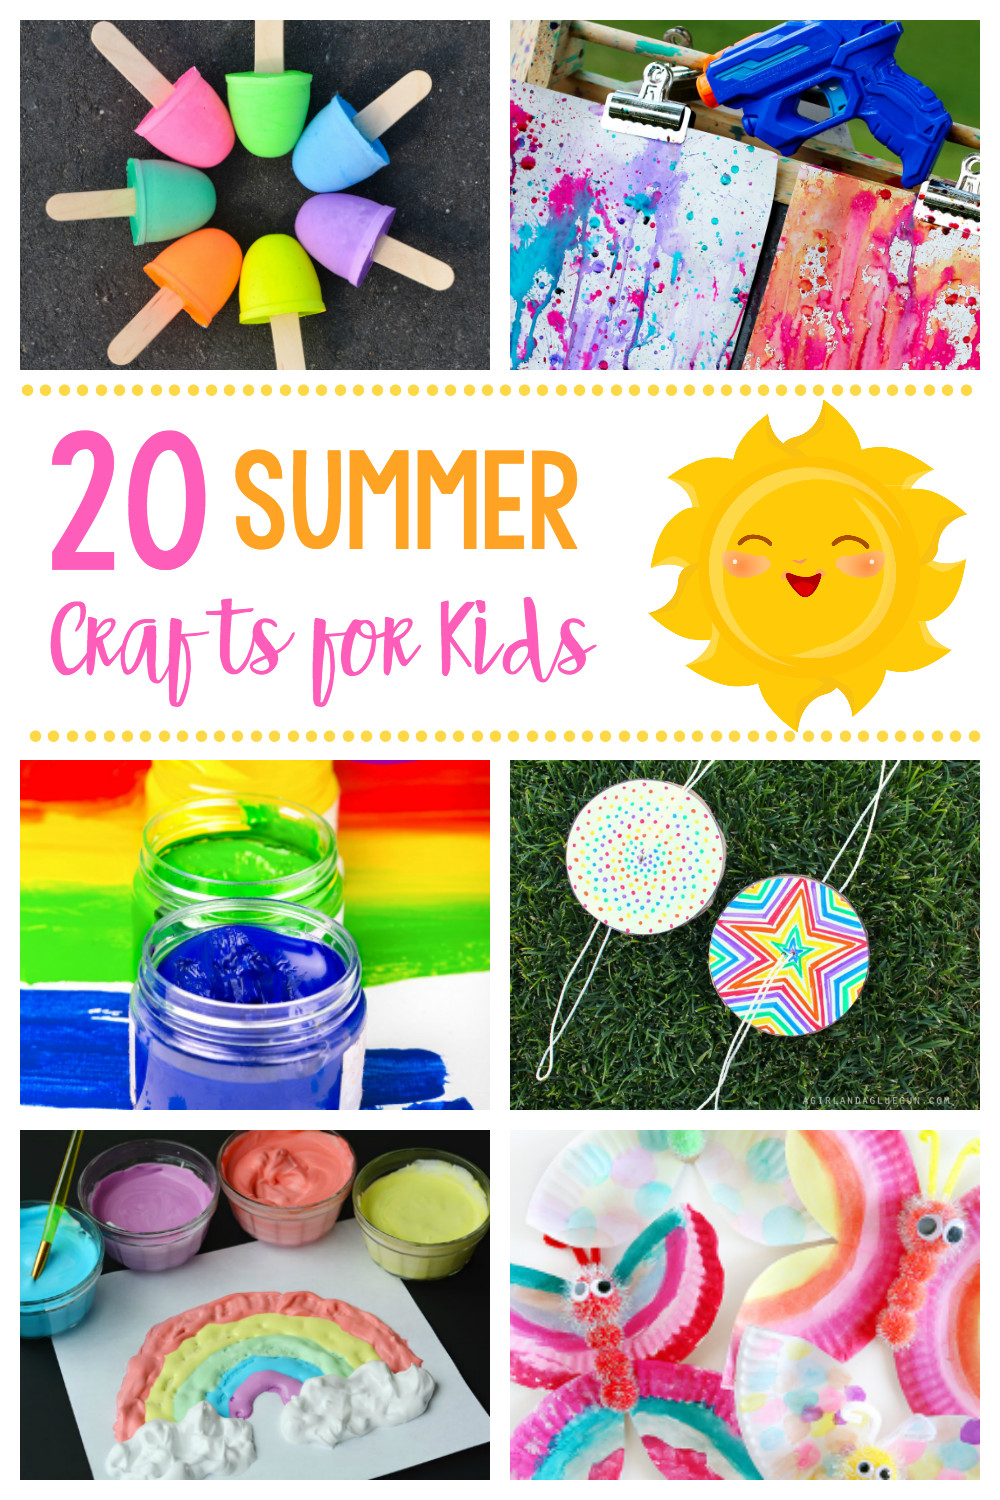 Best ideas about Kids Project Ideas . Save or Pin 20 Simple & Fun Summer Crafts for Kids Now.